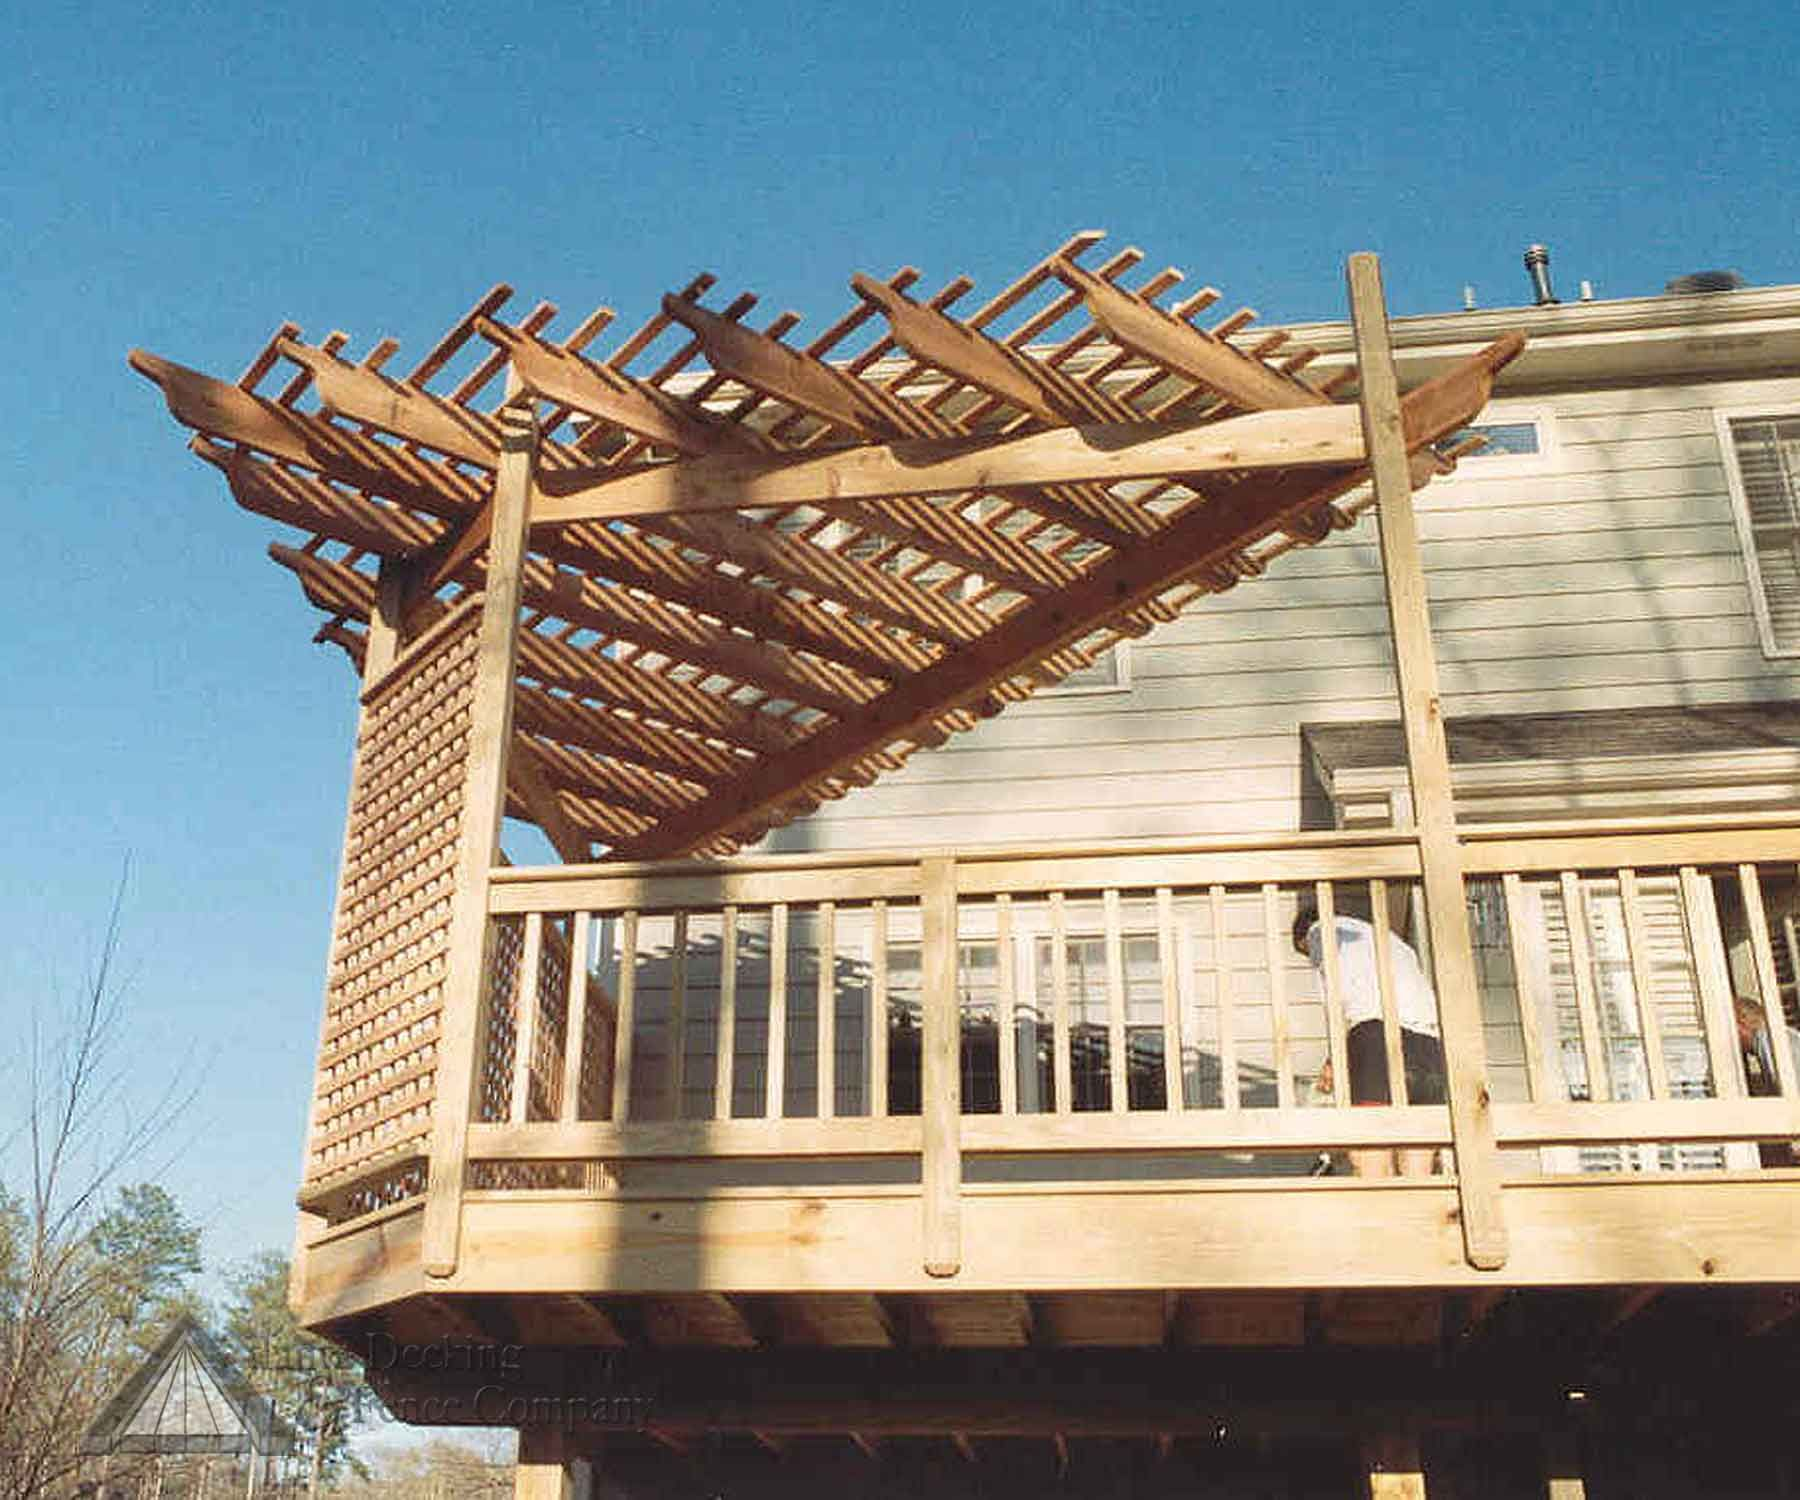 Hip Roof Pergola Over Garage Doors From Atlanta Decking: Pin By Atlanta Decking & Fence On BBQ Overhangs Protect